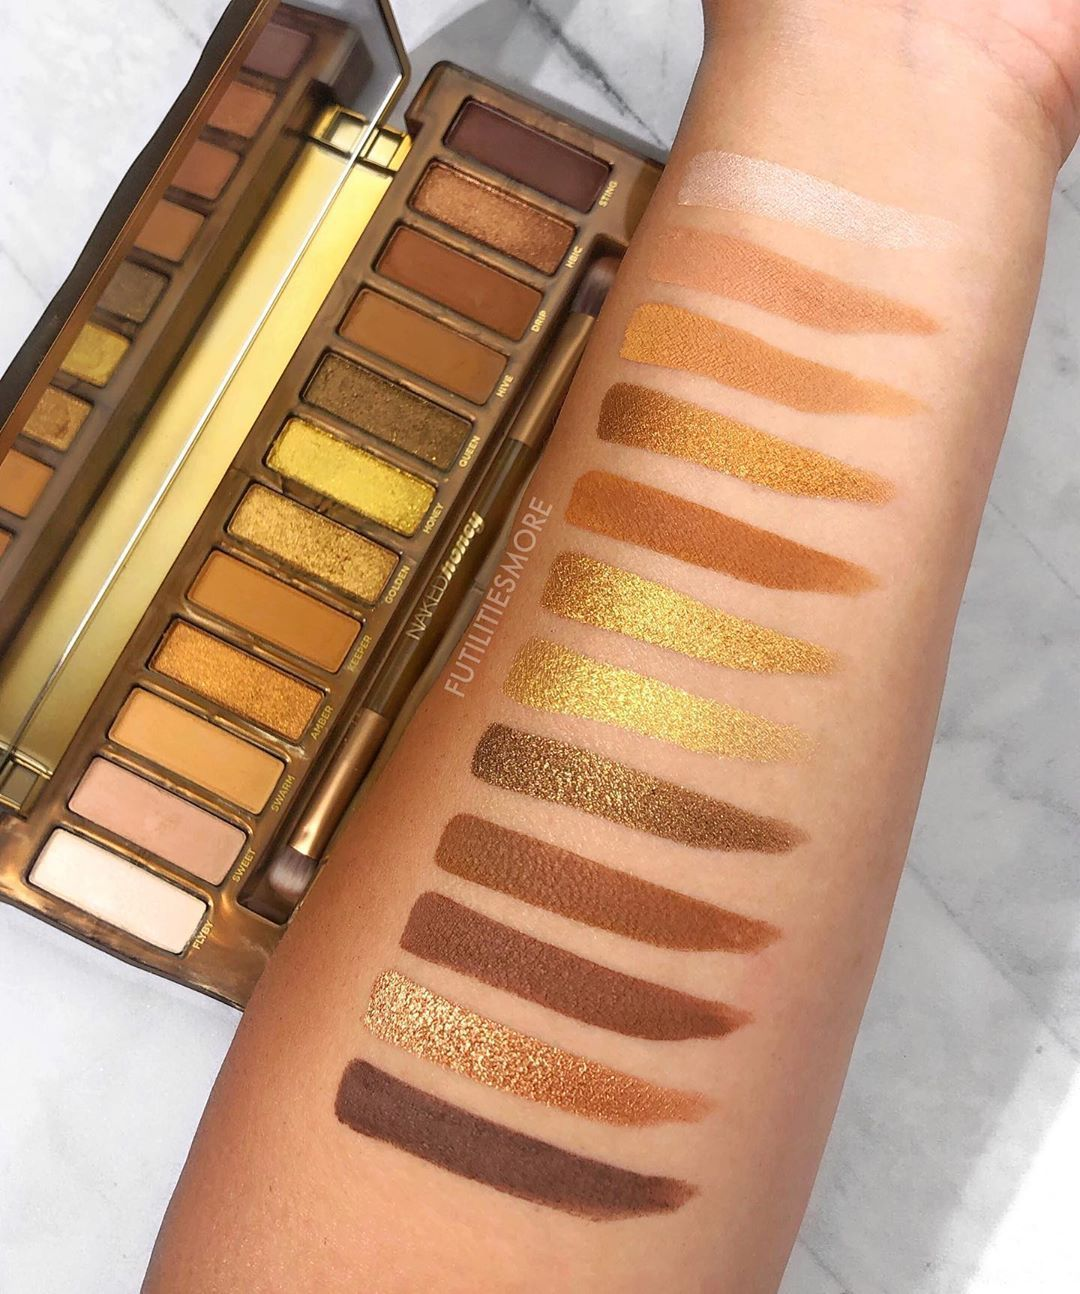 Get a Golden Hour Glow with the Urban Decay Naked Honey